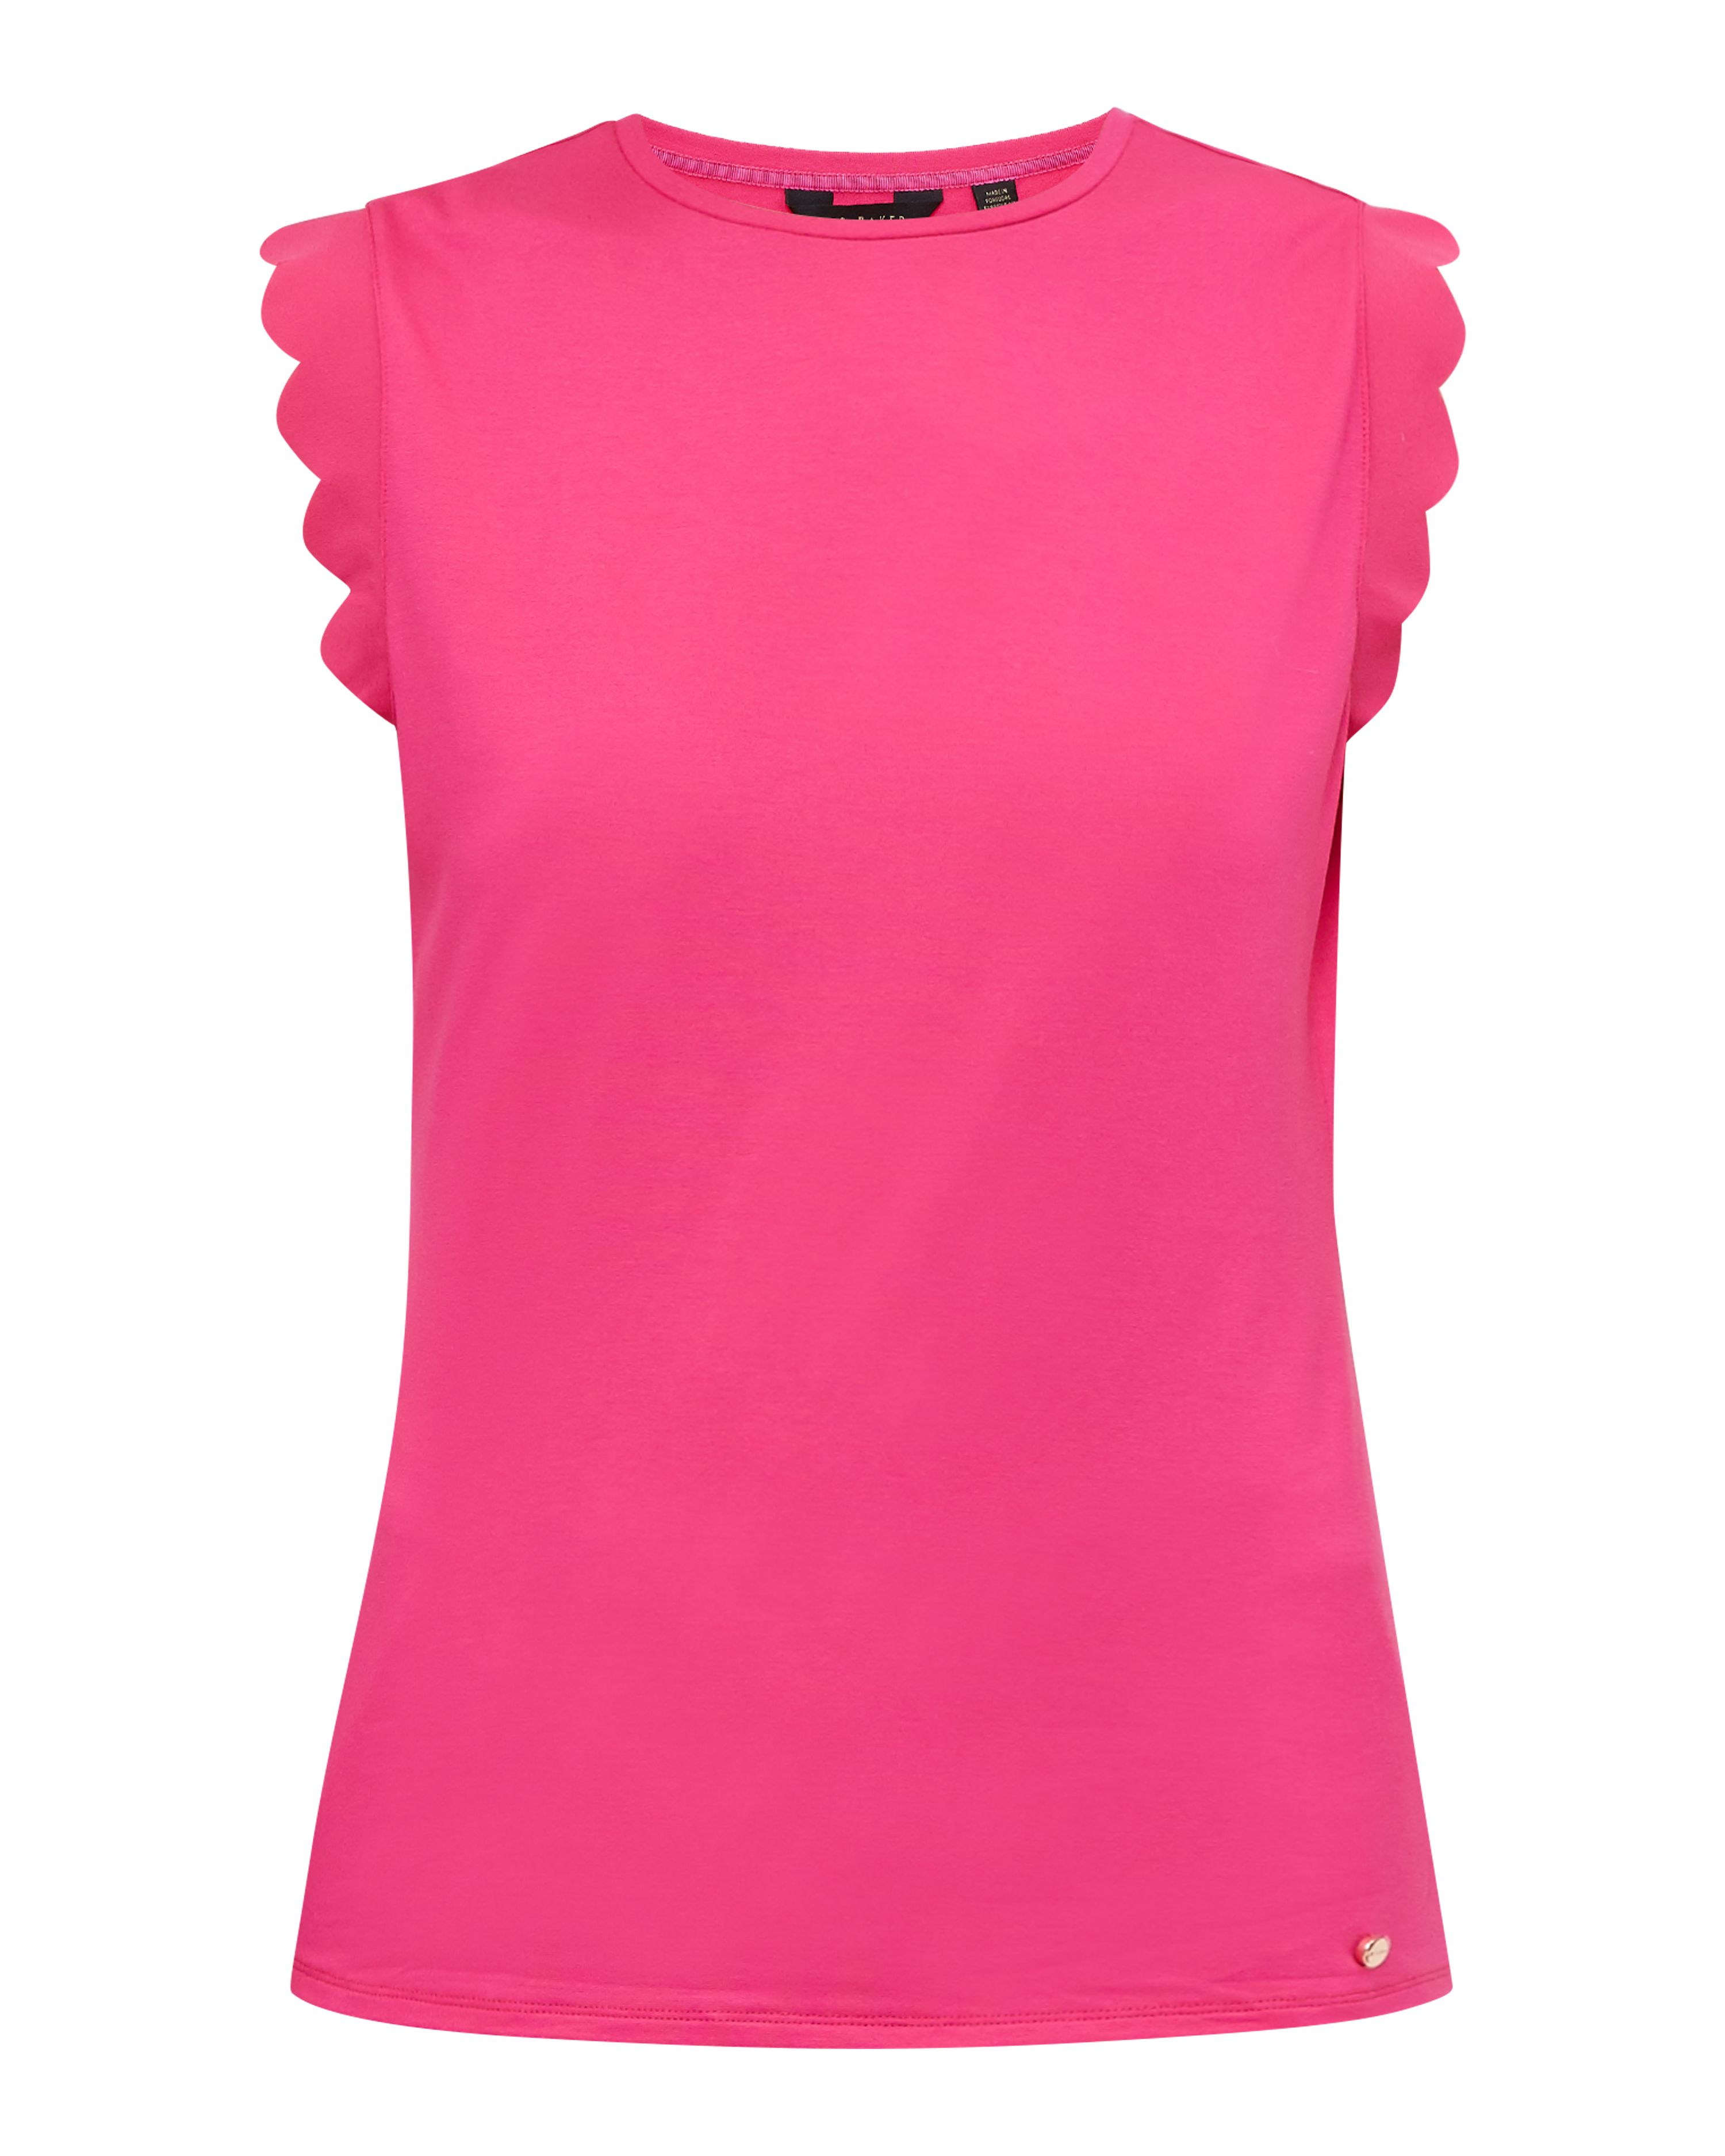 Ted Baker Elliah Scallop Detail Fitted T-Shirt, Fuchsia